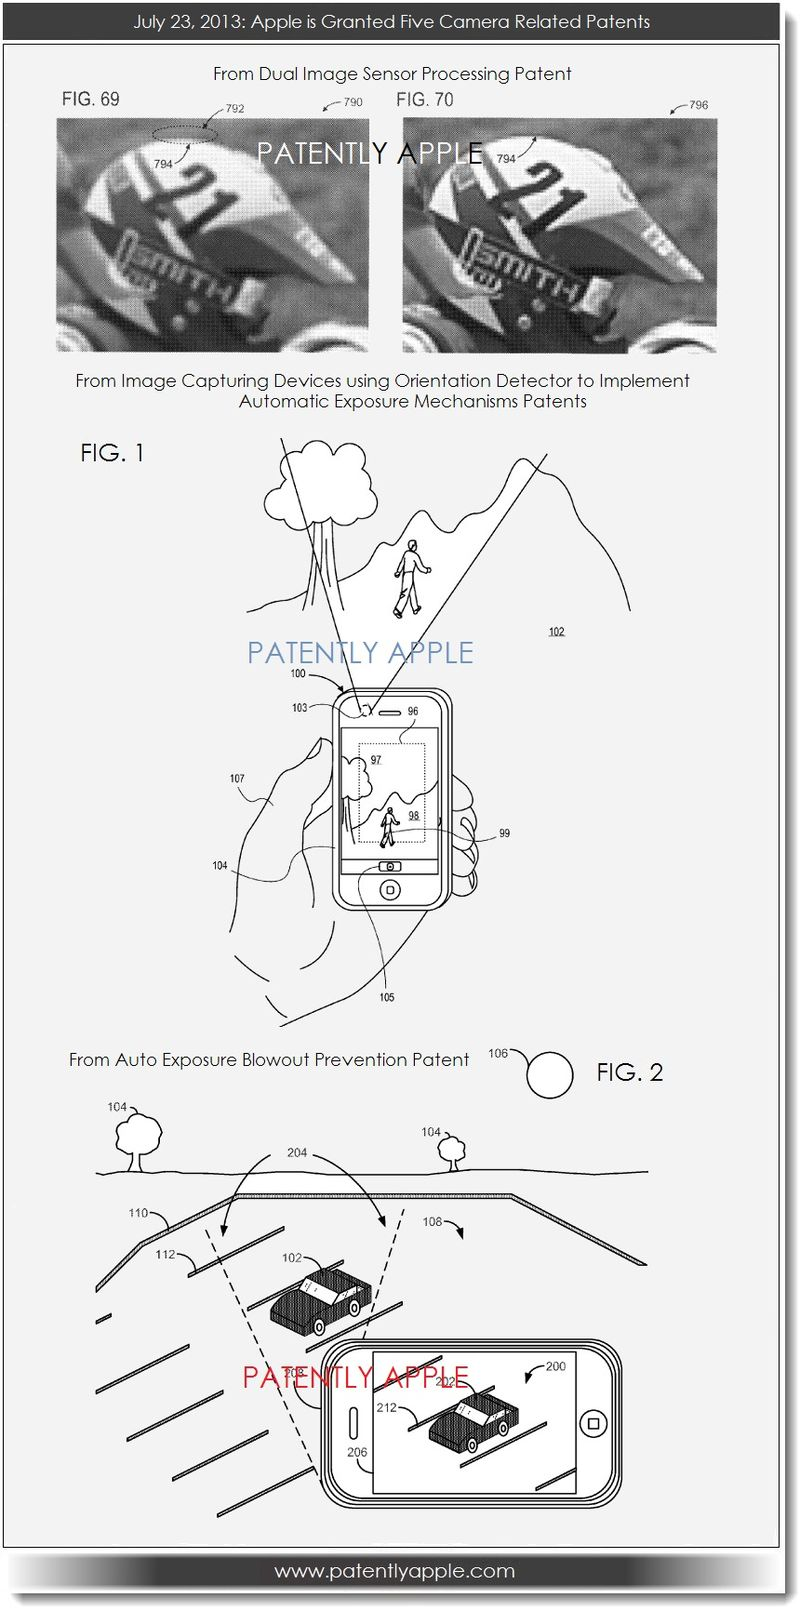 6. Apple granted five camera patents - July 23, 2013